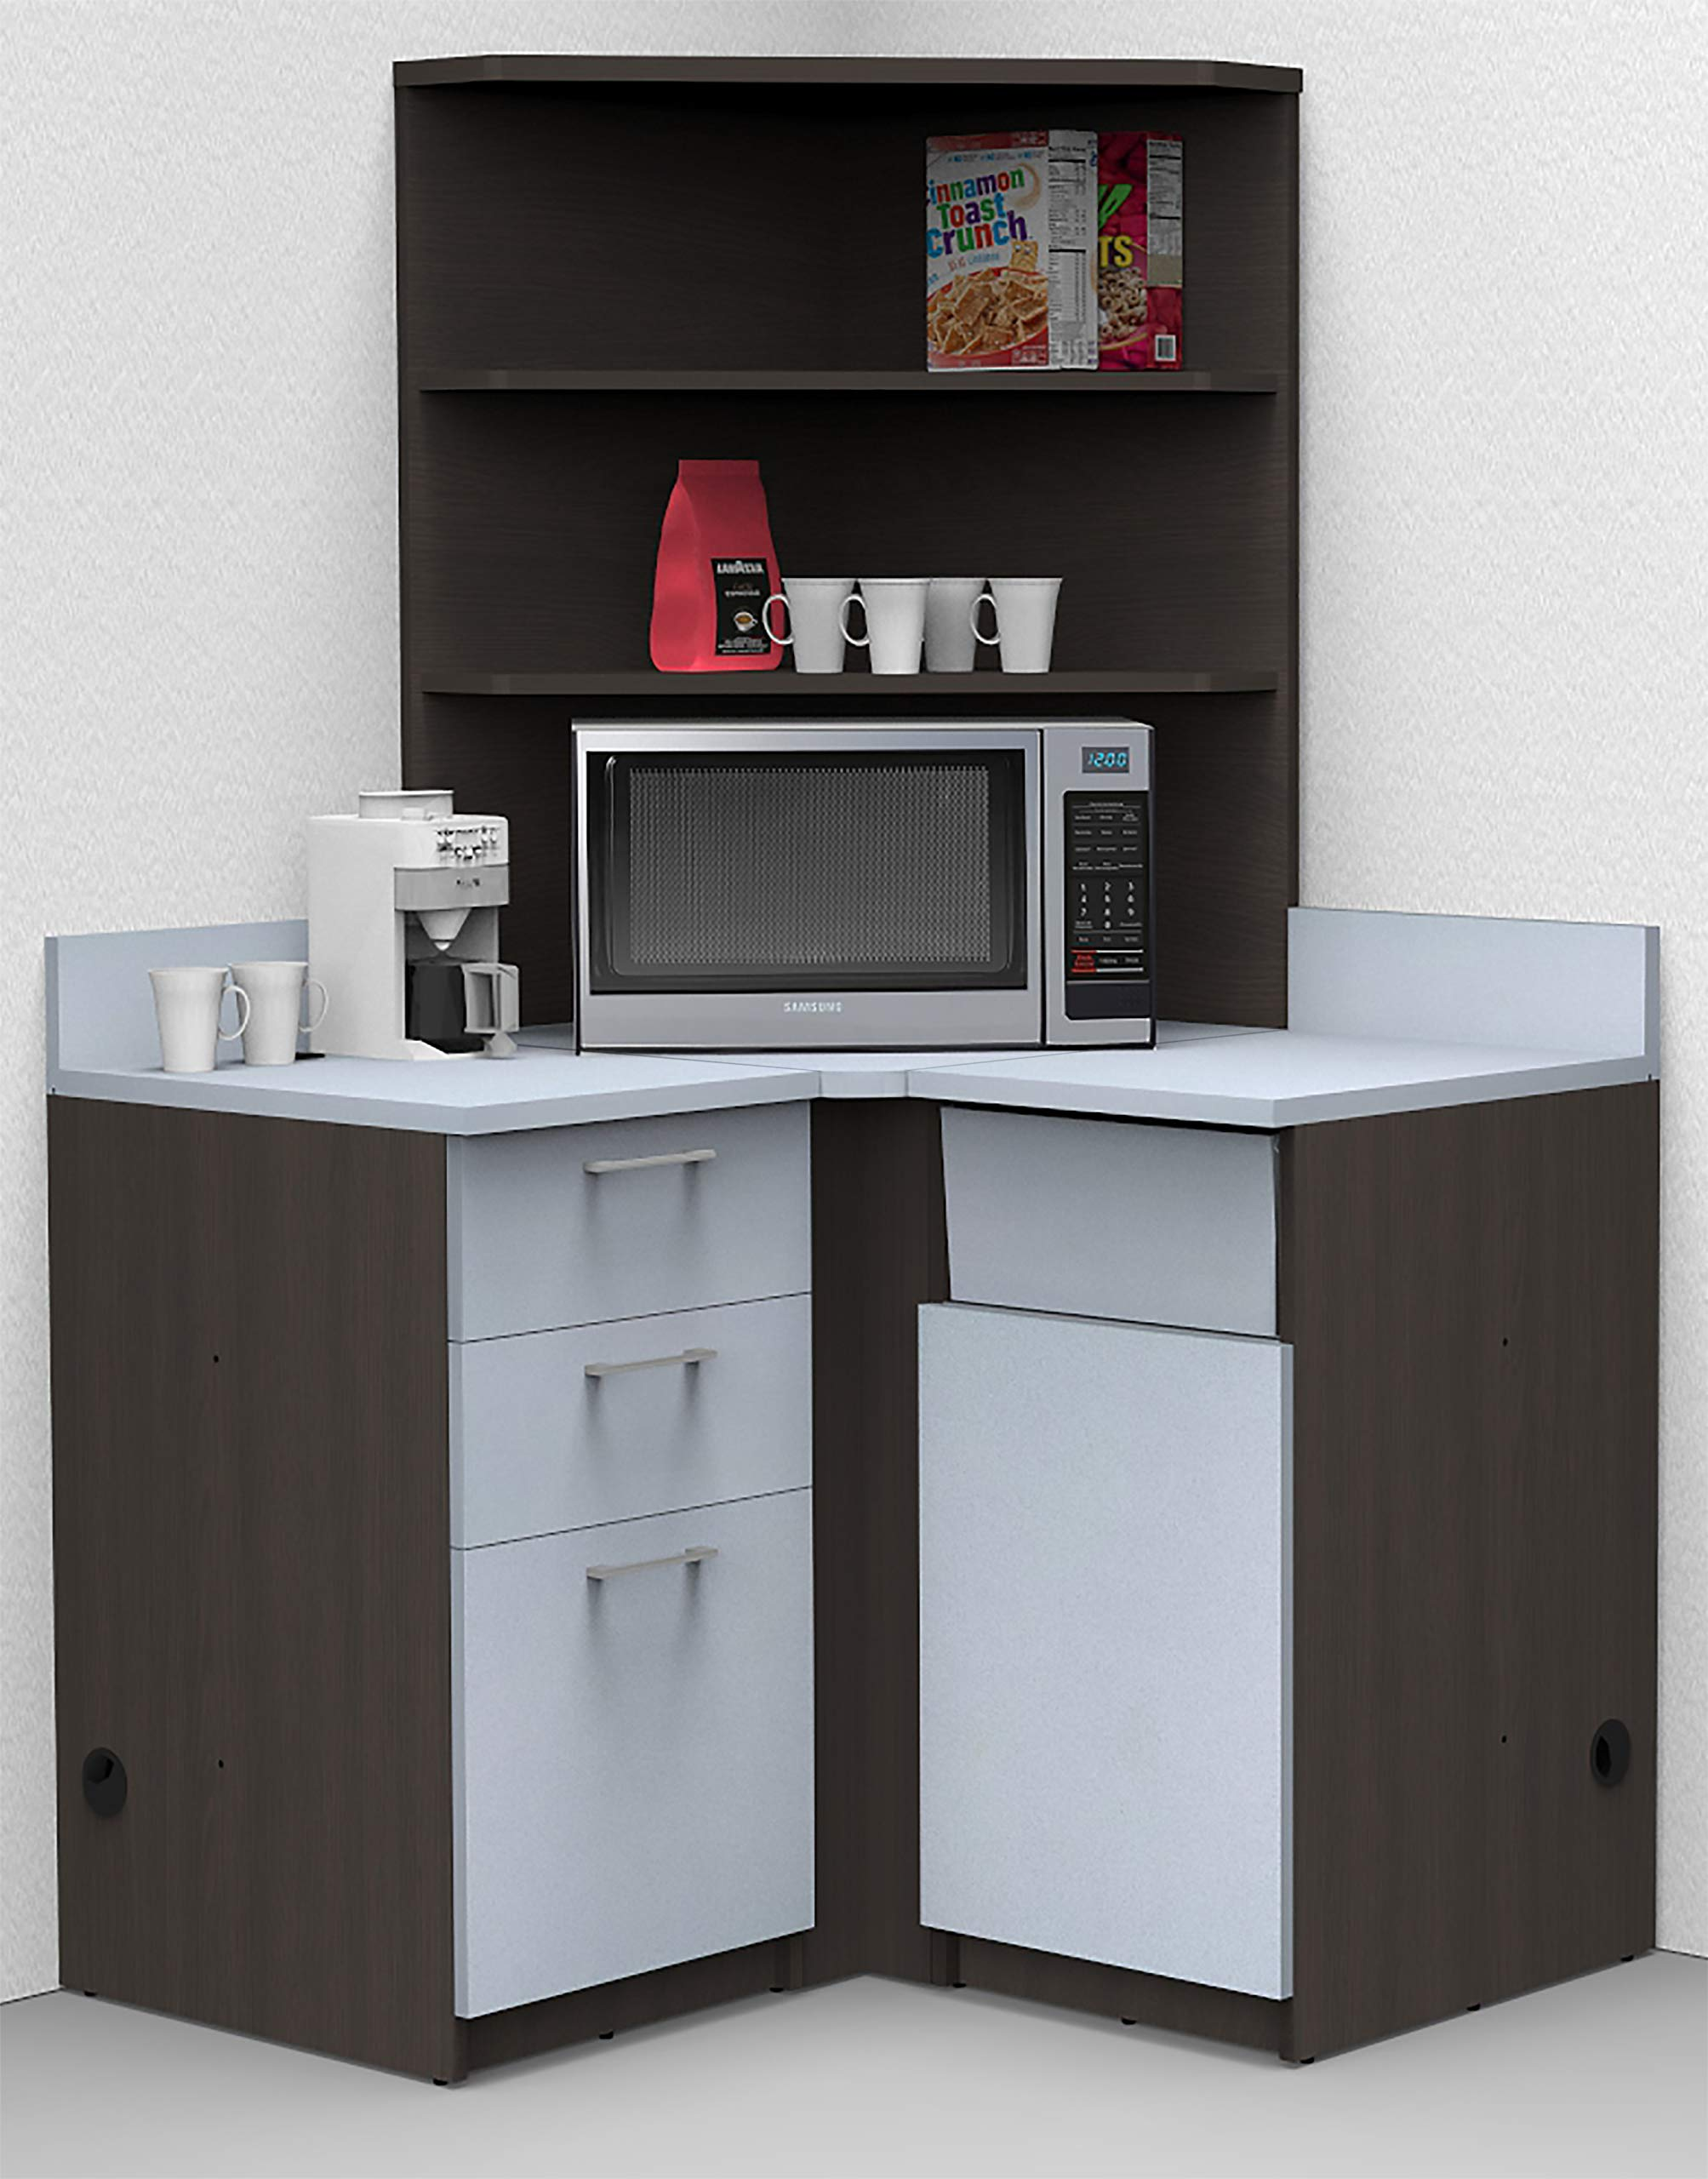 Coffee Kitchen Lunch Break Room Corner Space Saver Model 5990 BREAKTIME 4 Piece Color Espresso/Silver - Fully Factory Assembled. Purchase is Furniture Items ONLY by Breaktime